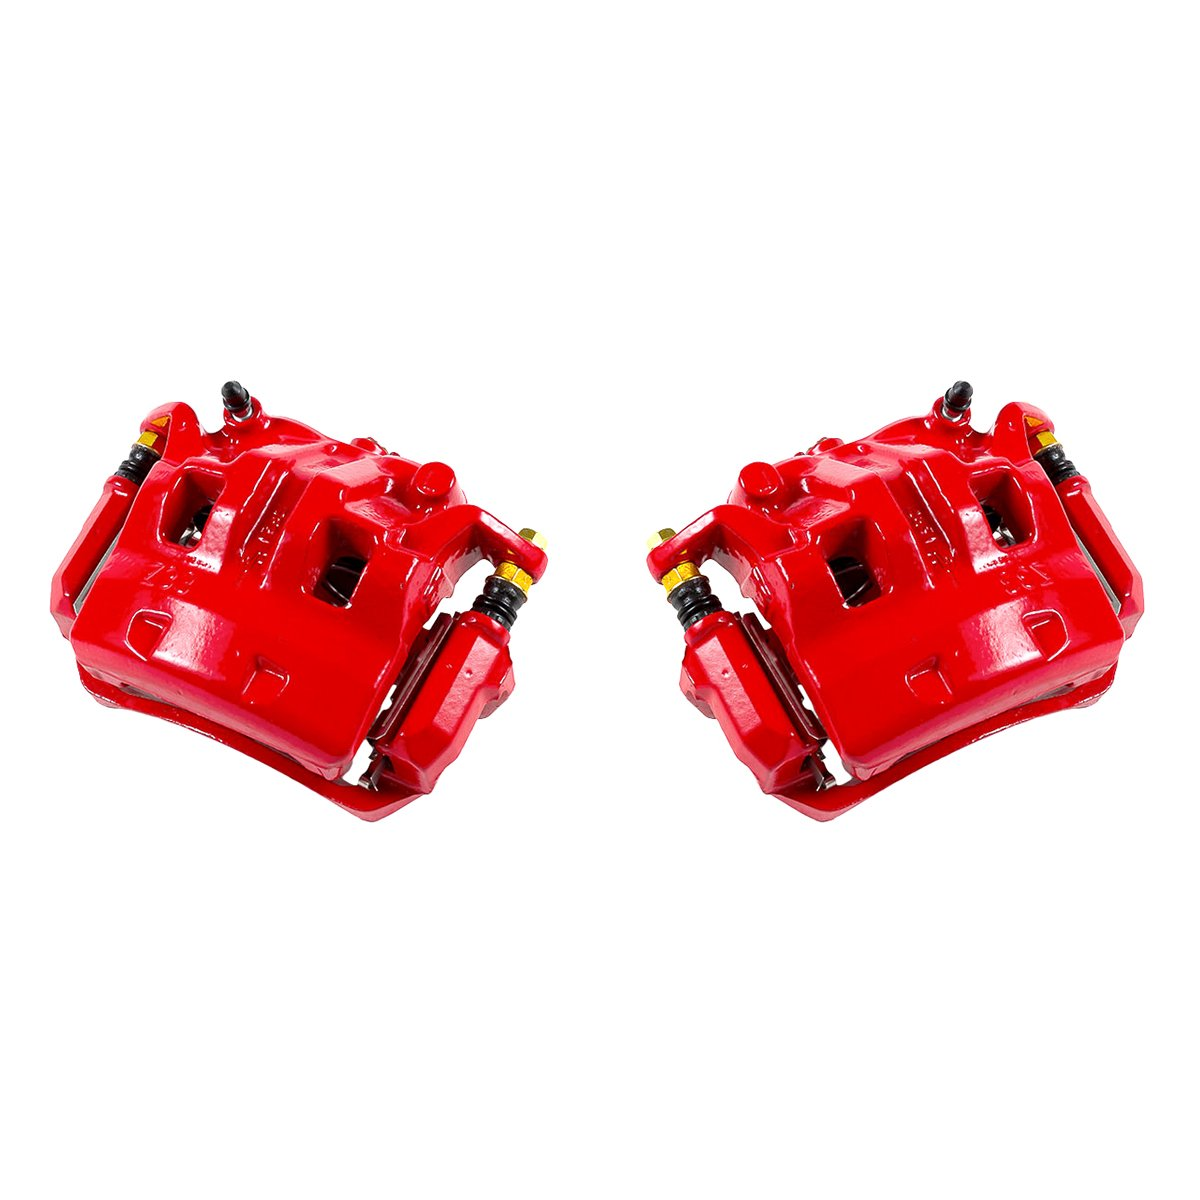 CK01191 FRONT Performance Grade Red Powder Coated Semi-Loaded Caliper Assembly Pair Set 2